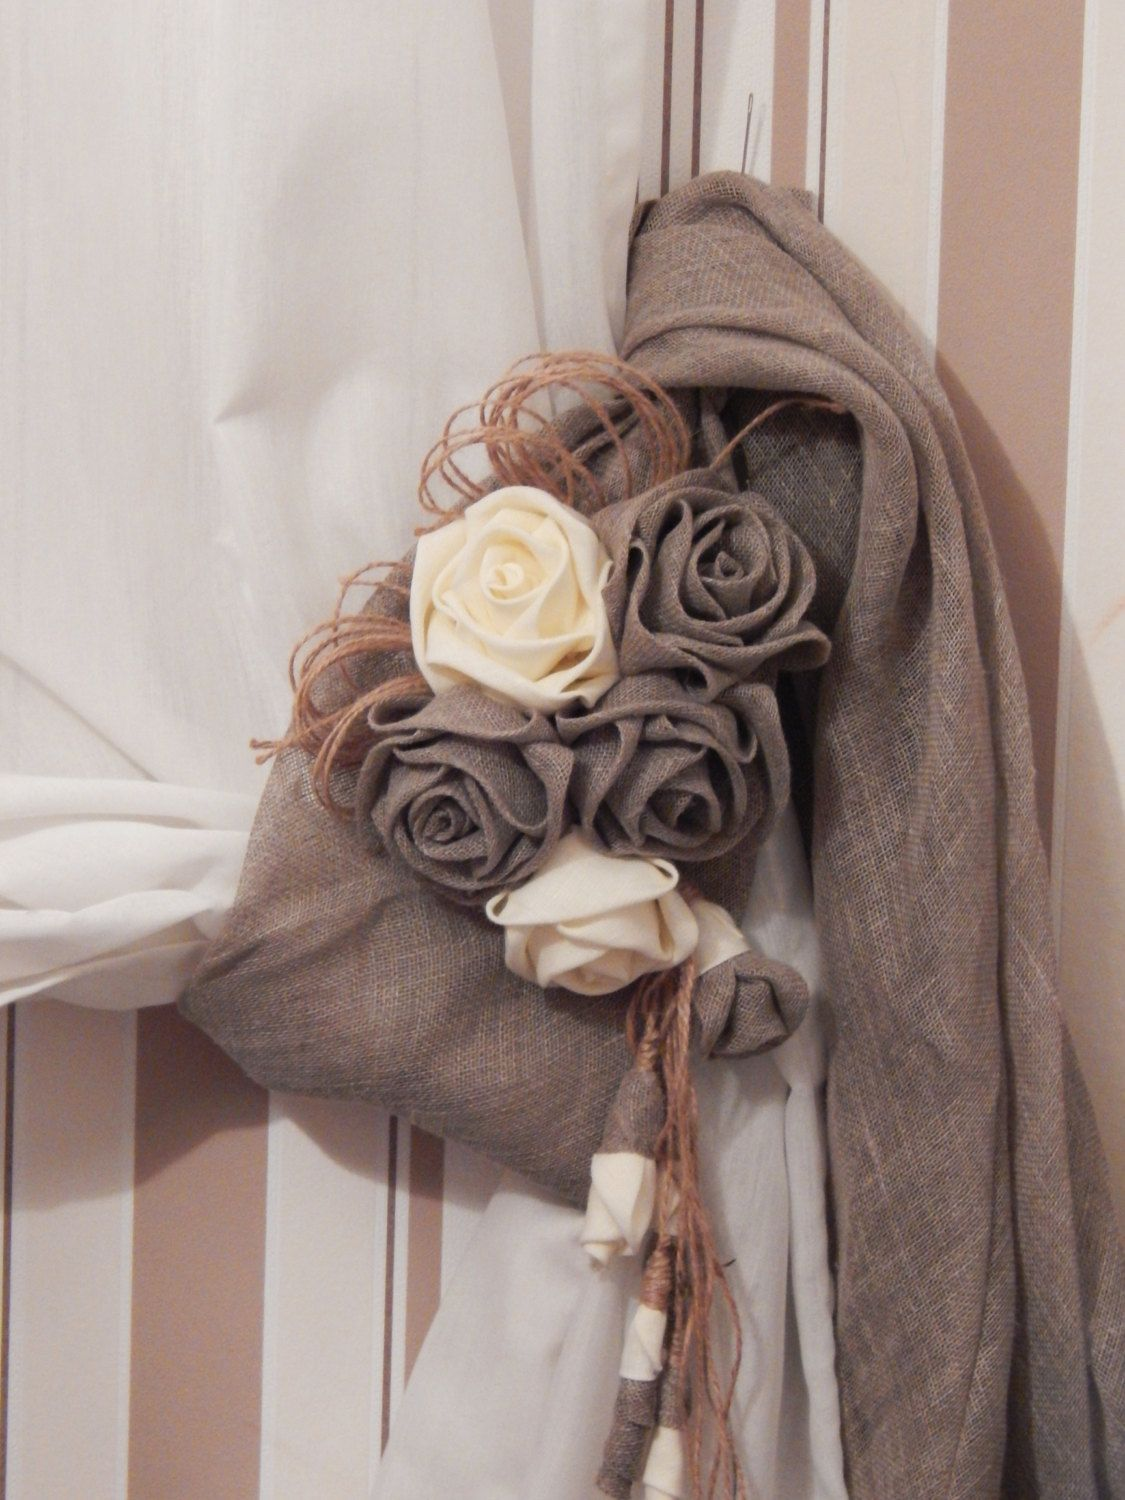 This Elegant Rustic Curtain Tie Back Made From Natural Grey Linen Decorated A Fabric Flowers Size 67 170 Cm Curtain Tie Backs Rustic Curtains Curtain Ties